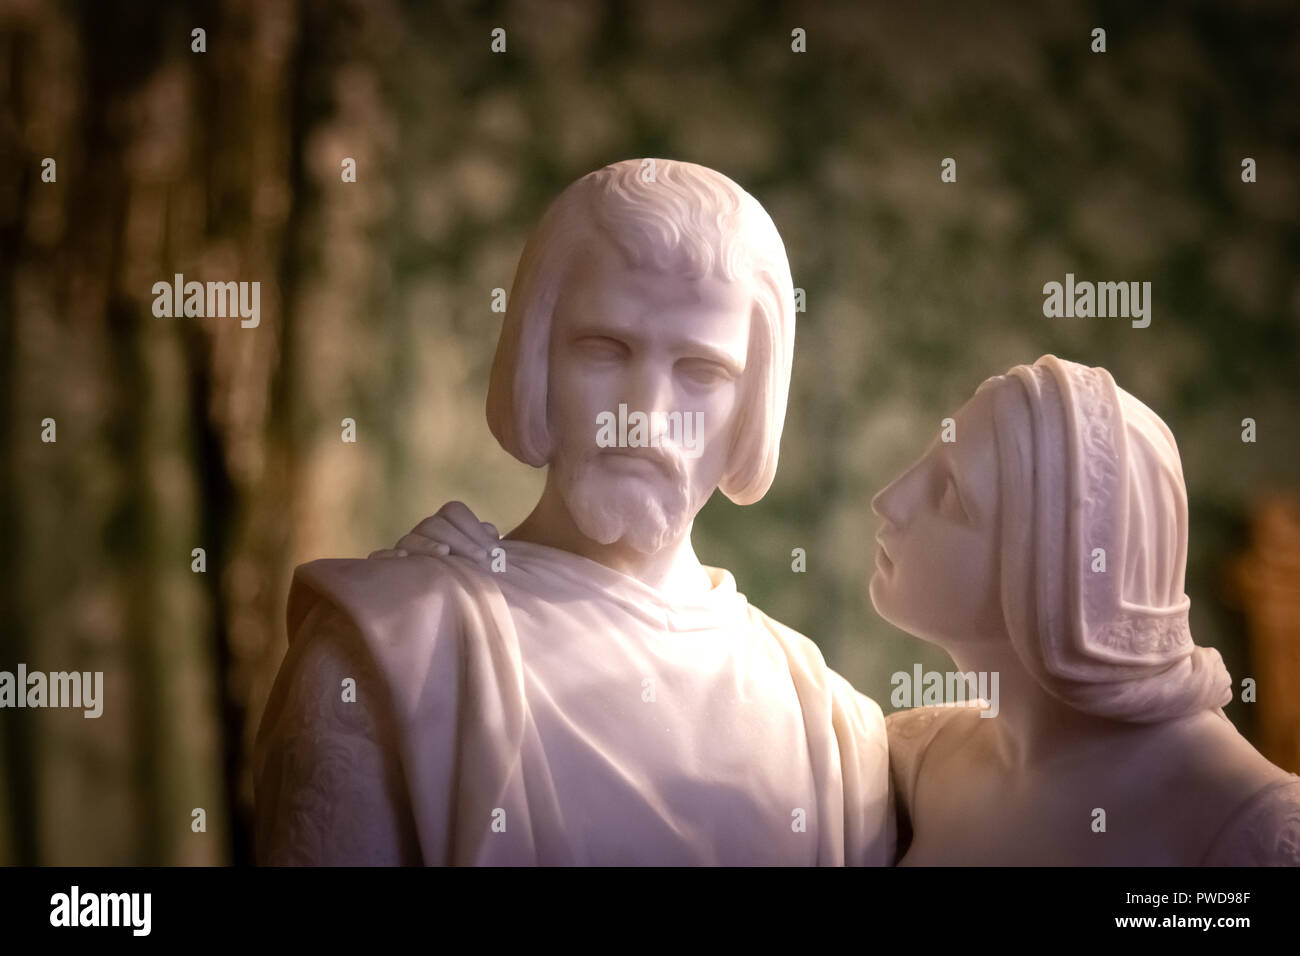 A woman looks with concern at a man in this statue on display in the Pitti Palace in Florence, Italy. - Stock Image